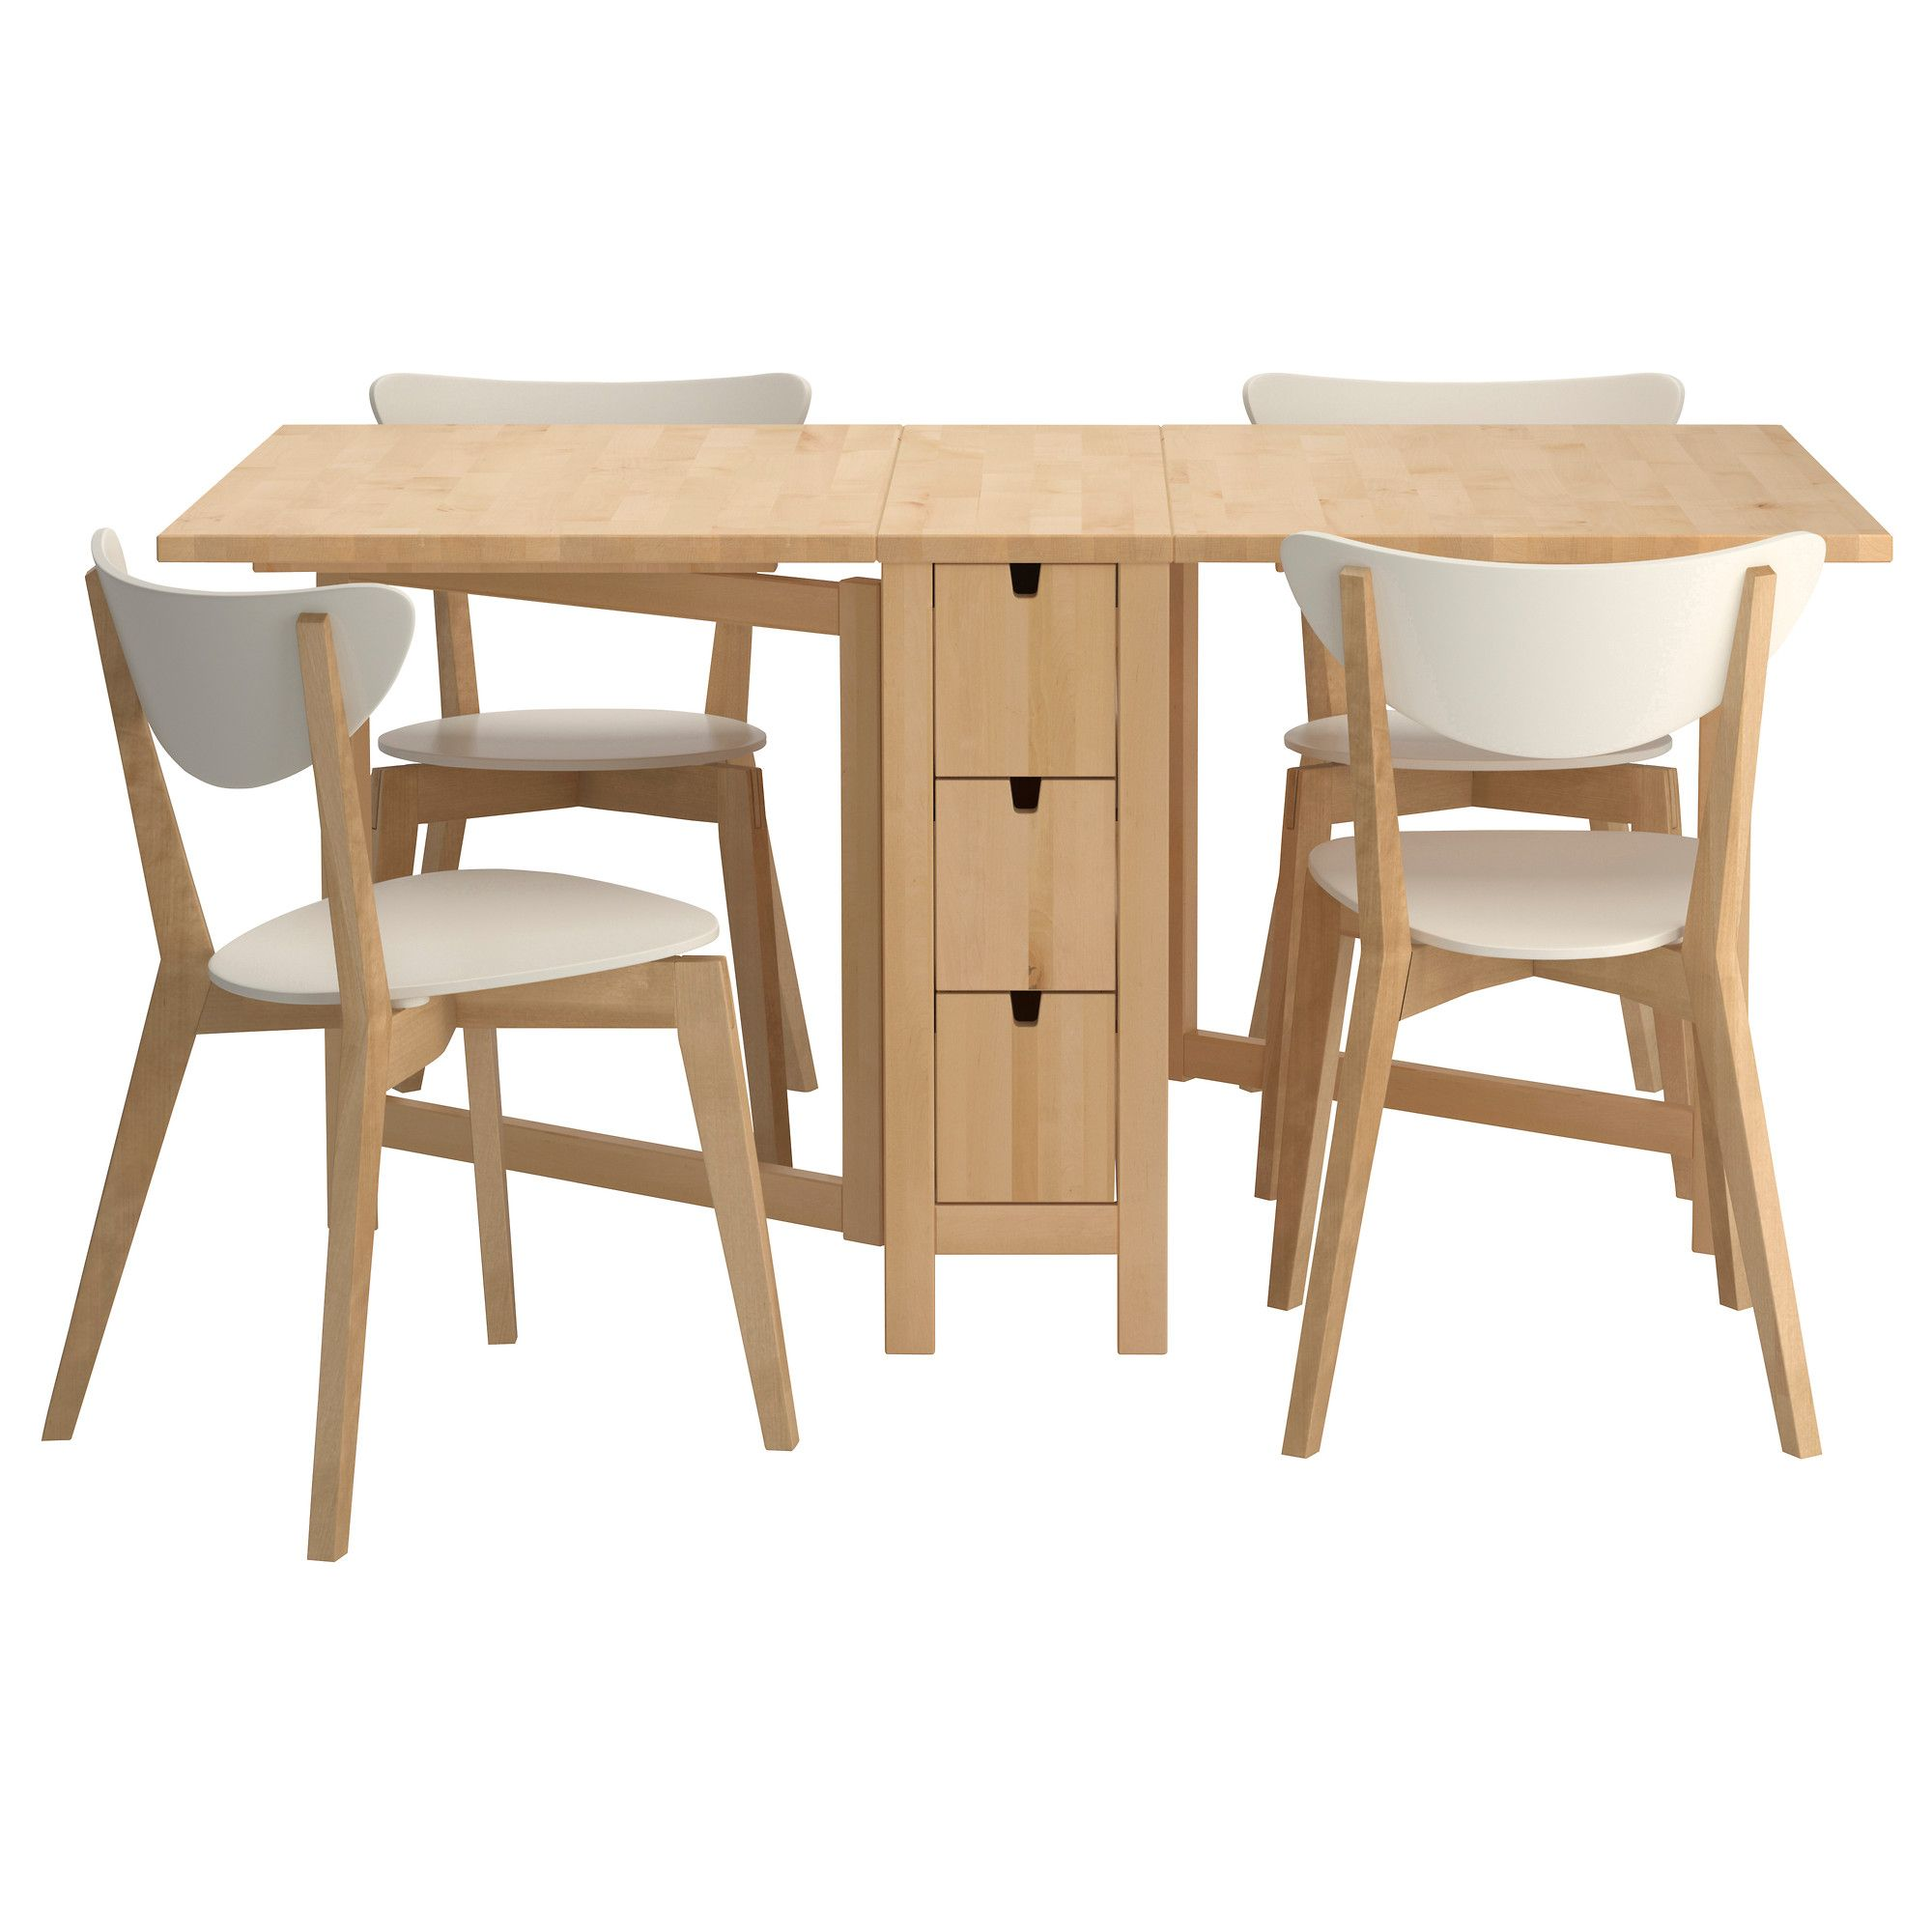 Dining Room Furniture Sets Ikea: NORDEN/NORDMYRA Table And 4 Chairs - IKEA